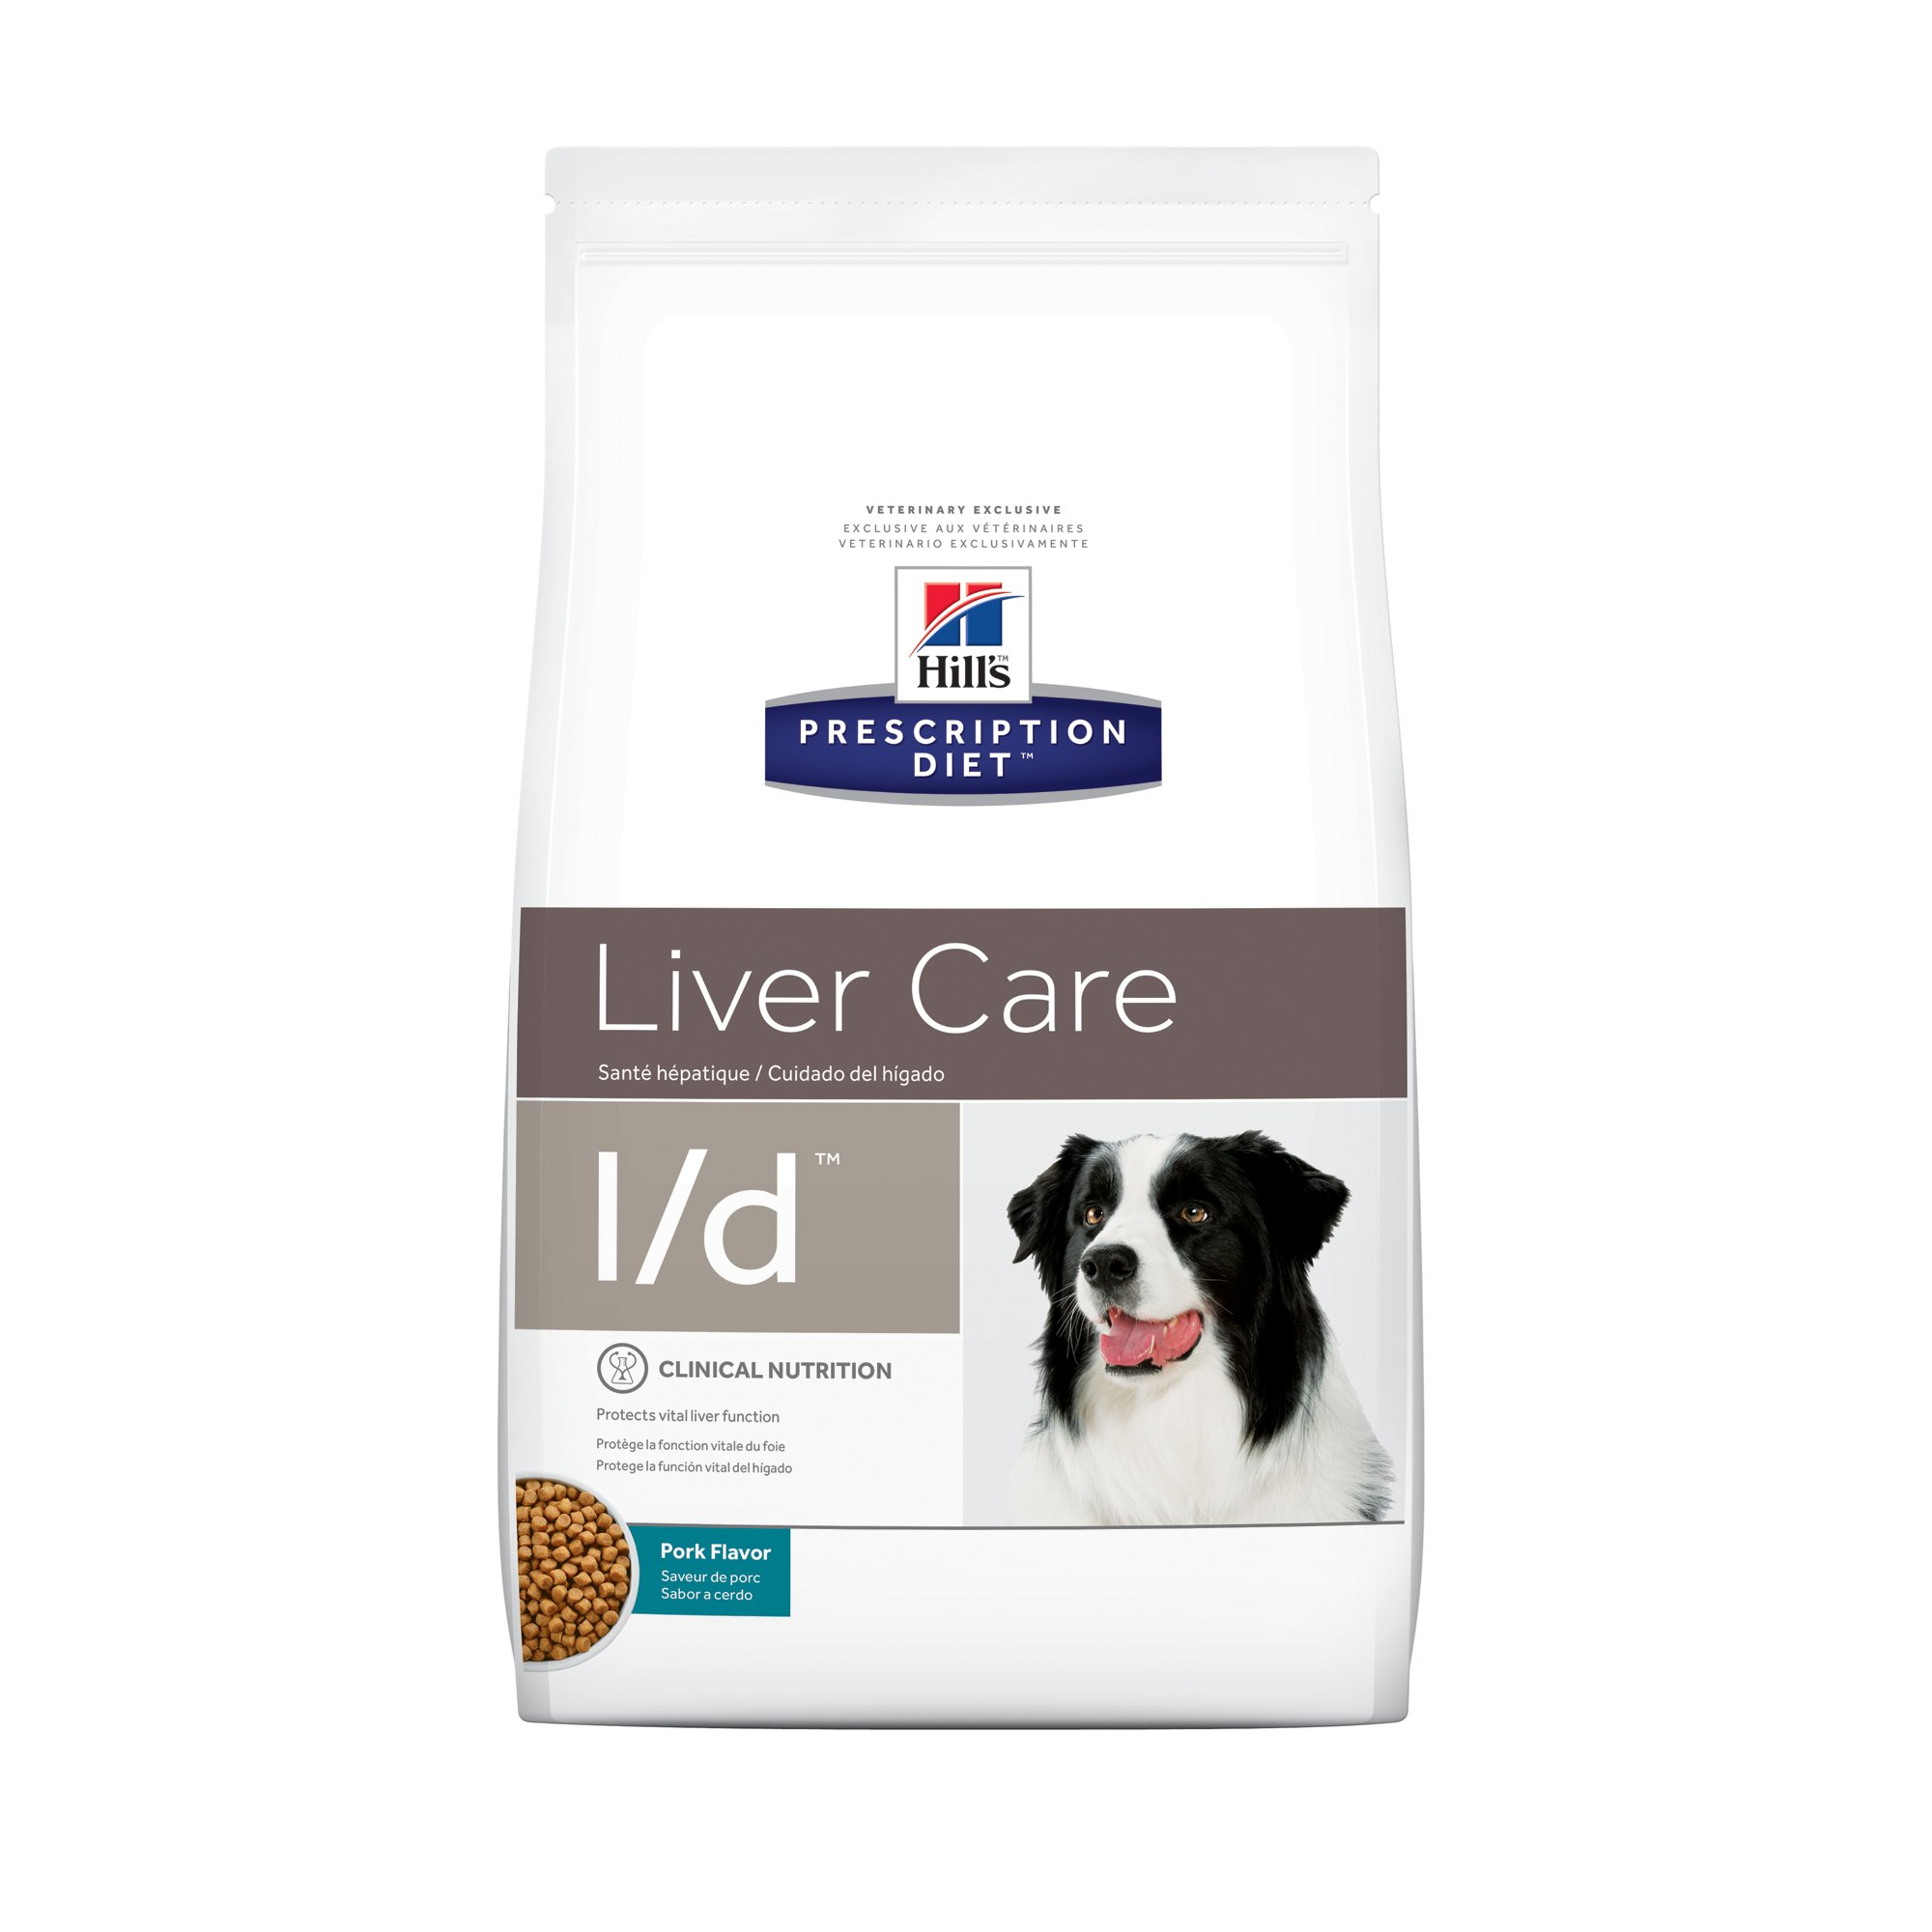 Image result for Hill's Prescription Diet l/d Liver Care Pork Flavor Dry Dog Food